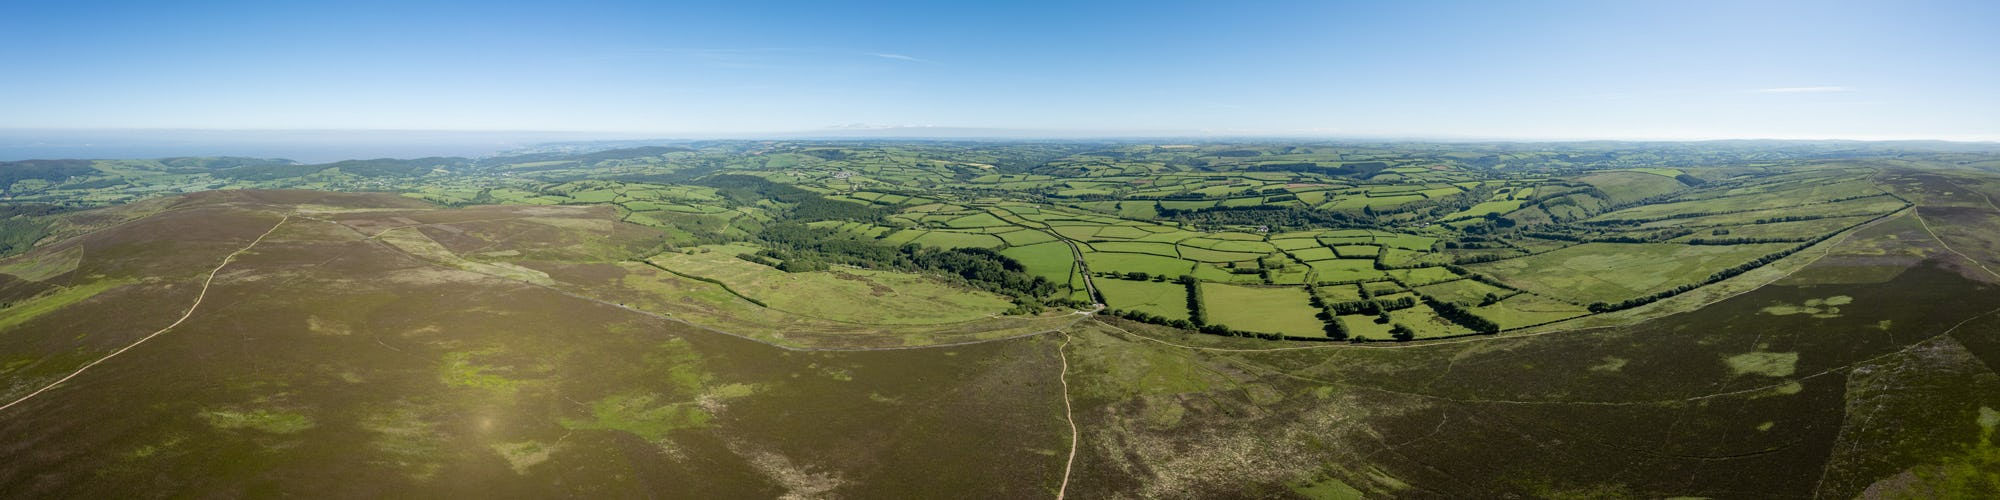 Steadway Farm CL from Dunkery Beacon, Exmoor, Somerset